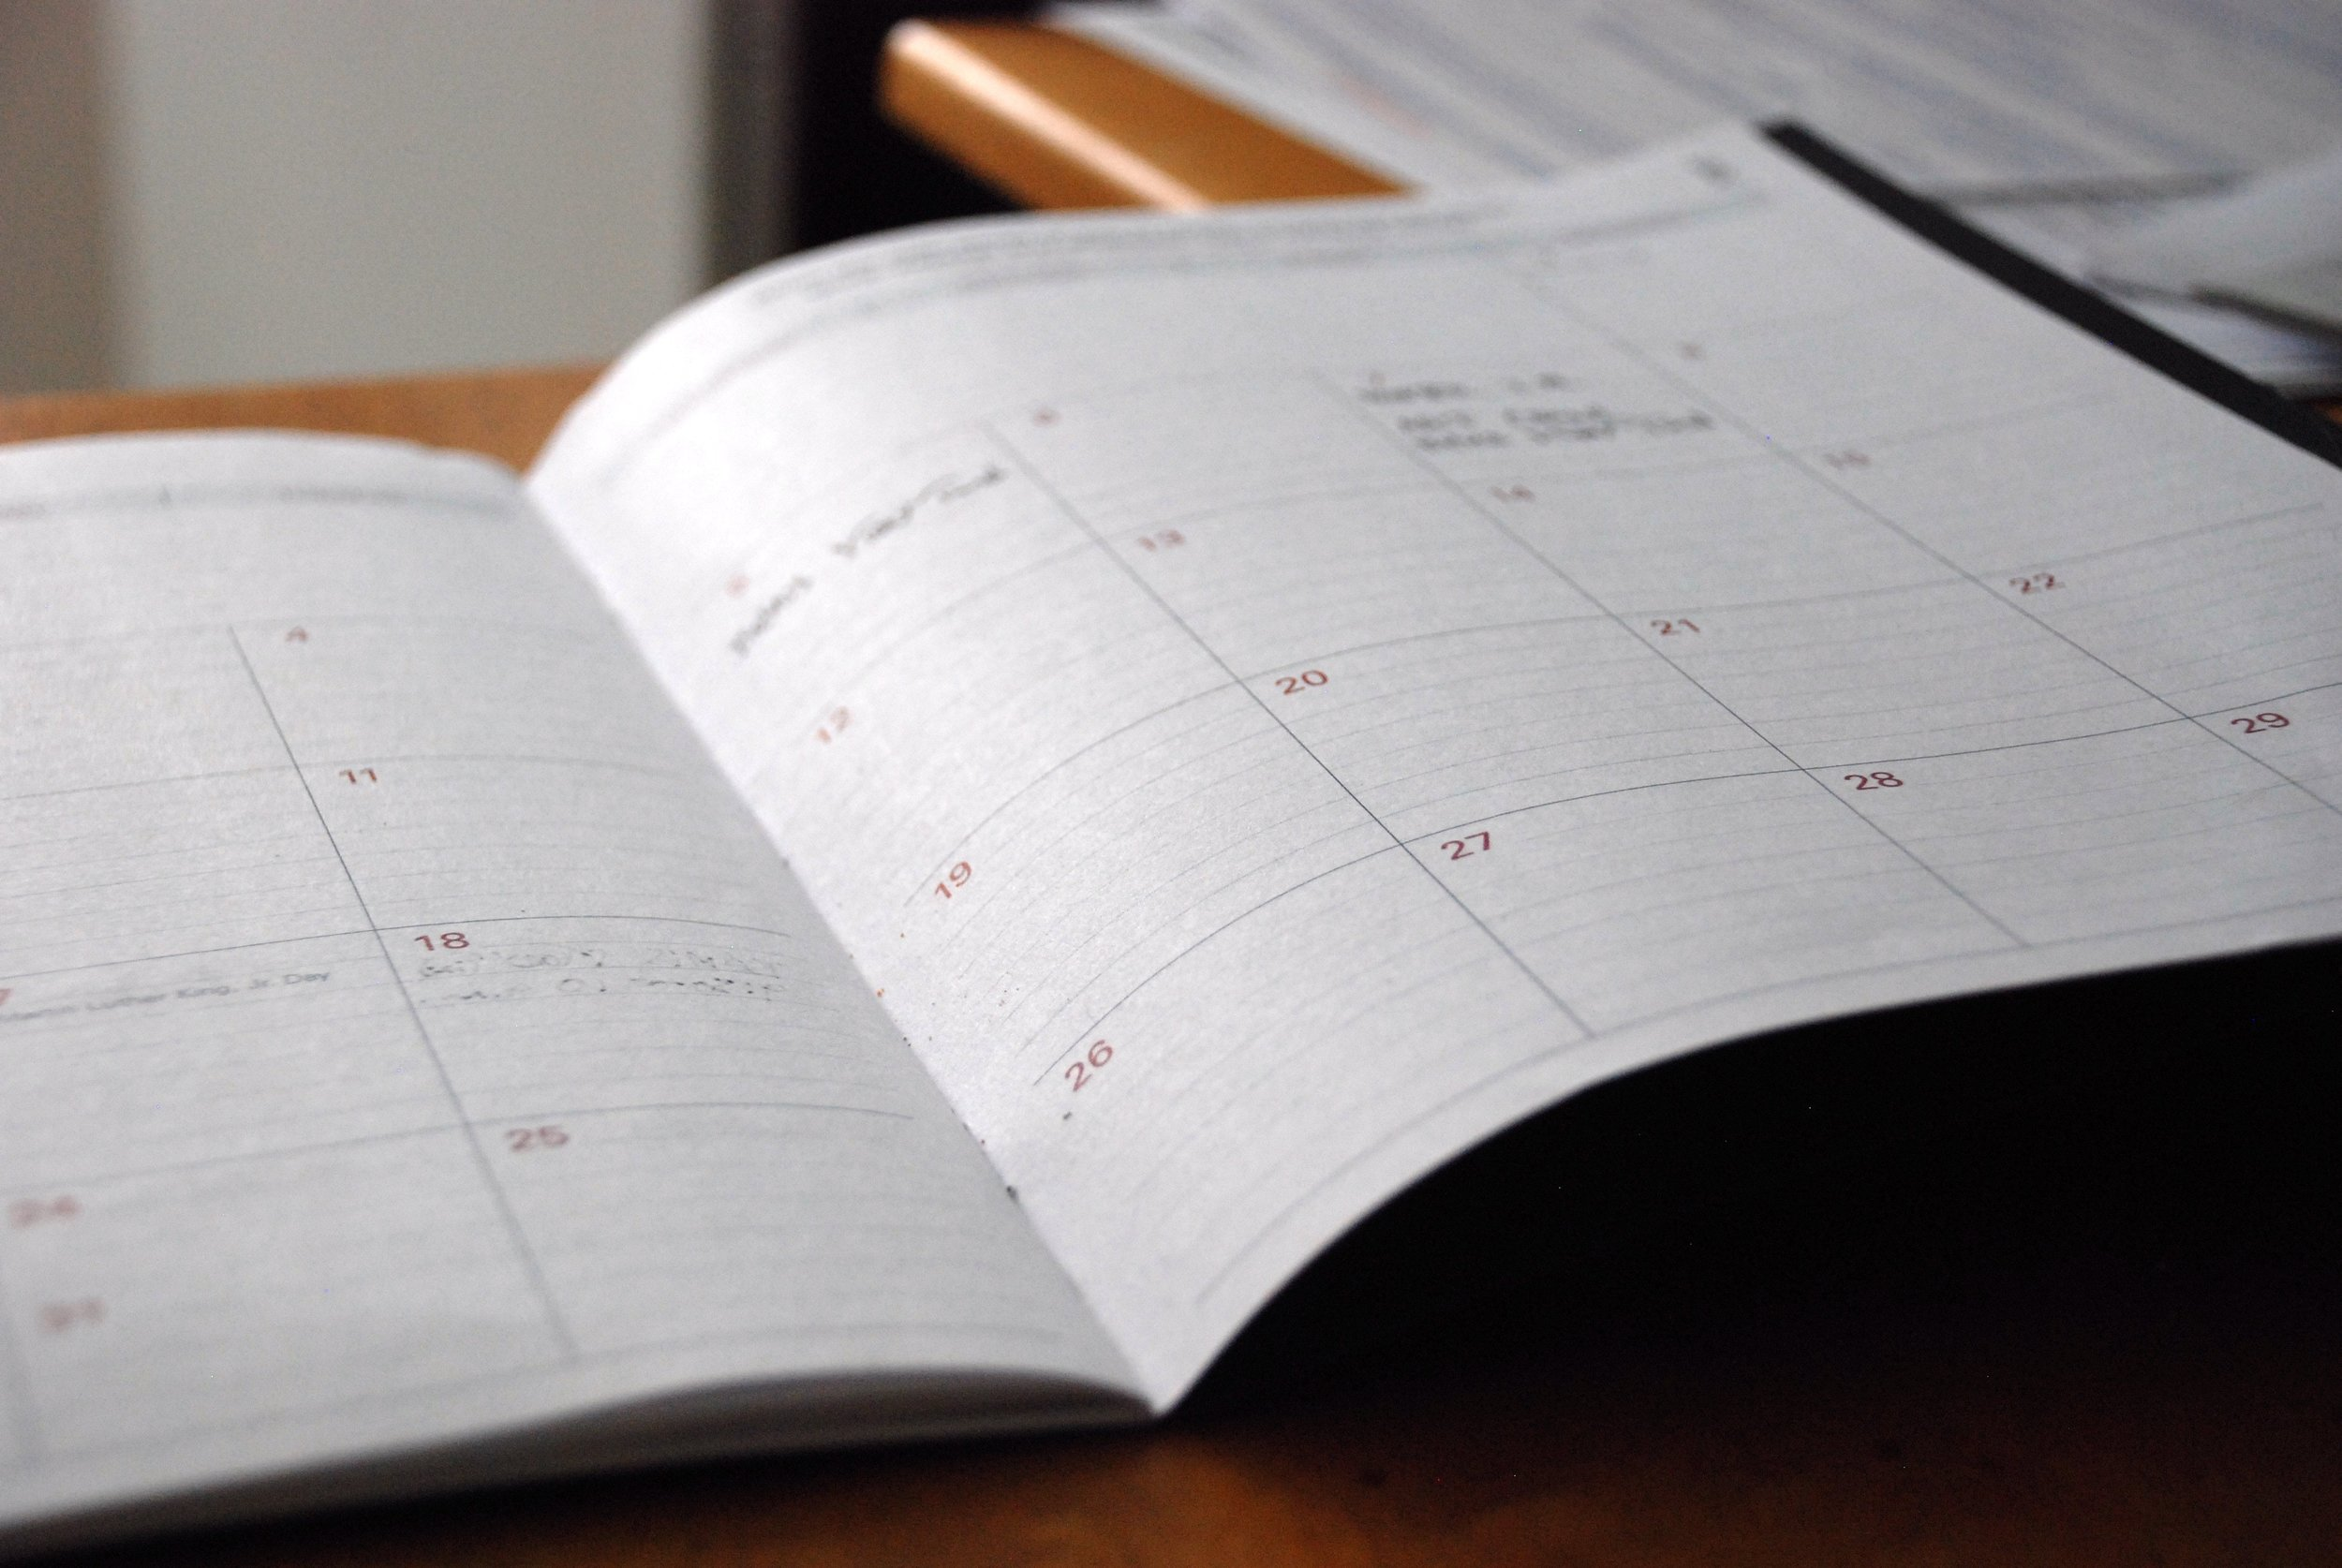 Step two - What special days are coming up that align with your nutrition blog?